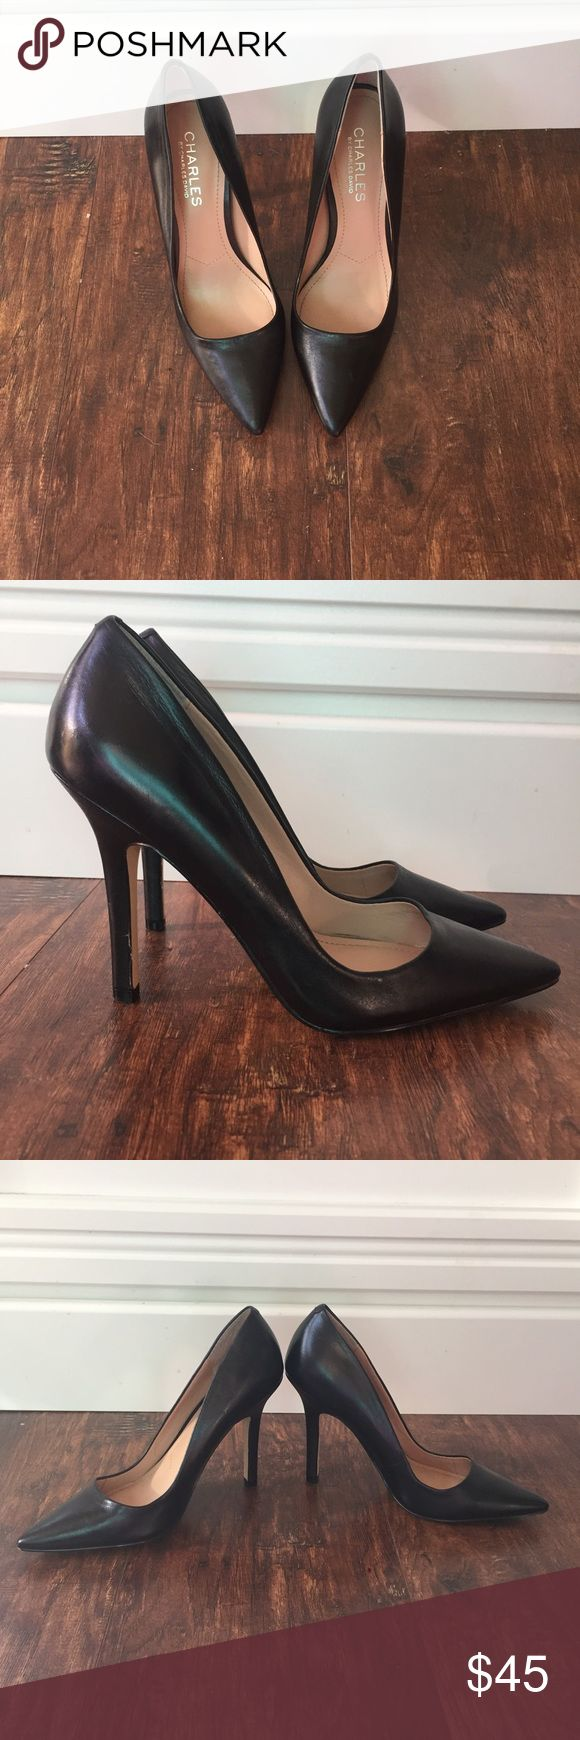 Charles by Charles David Pointed Black Heel Charles by Charles David black pointed toe pump. A classic shoe that pairs great with jeans or slacks for work. Excellent Used Condition. Charles David Shoes Heels